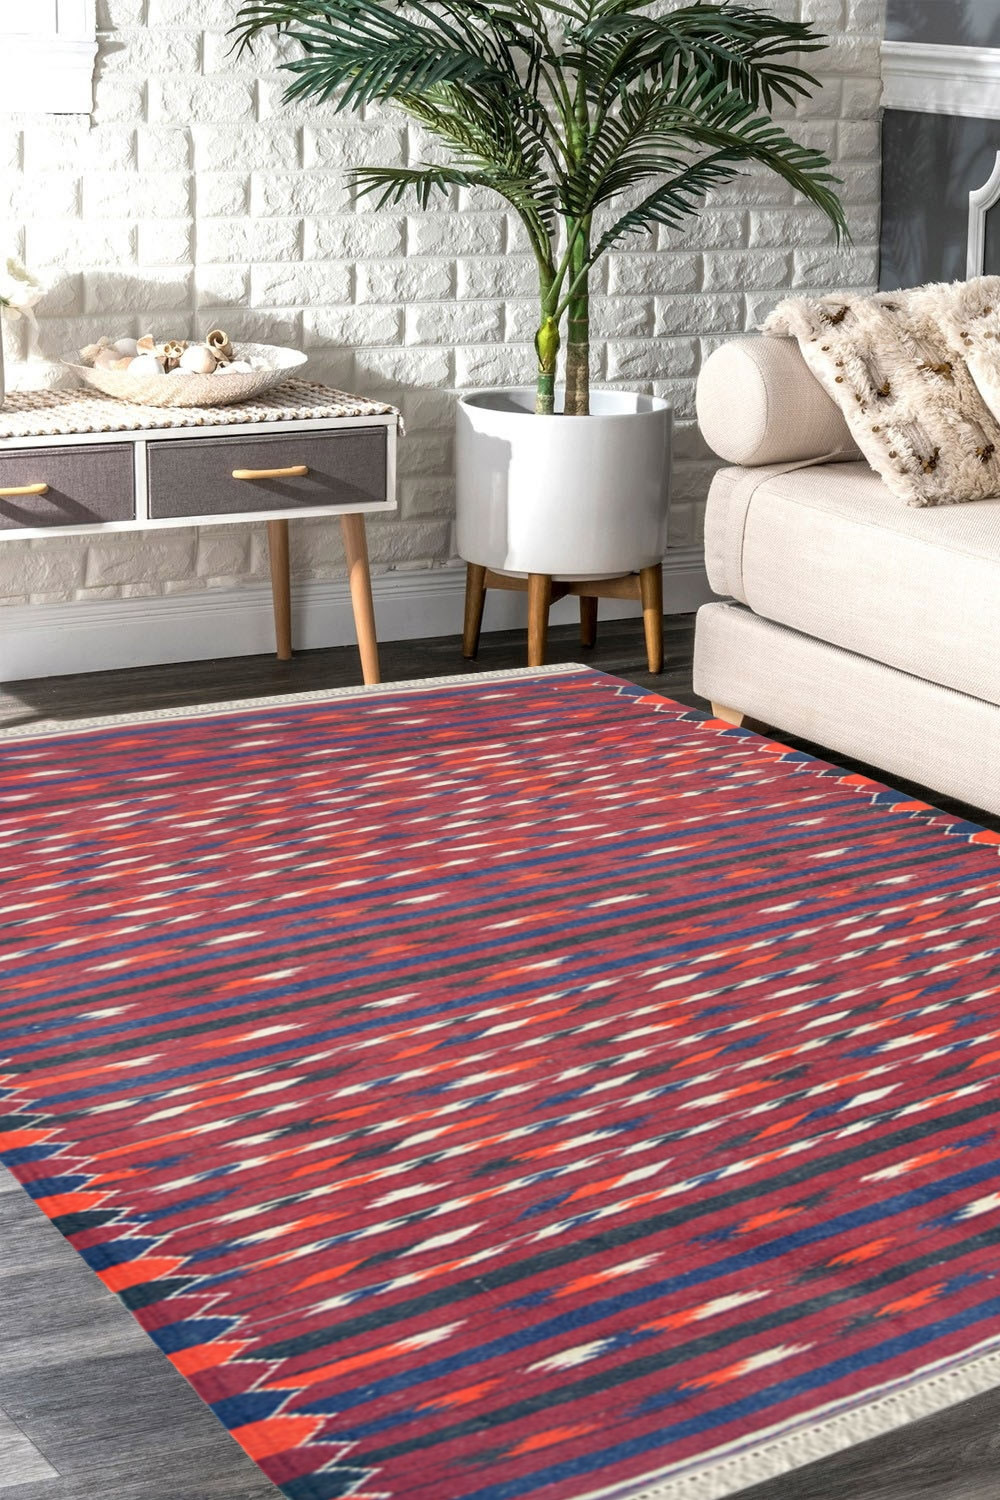 Geo Needle Work Kilim Carpet For Sale At Best Price